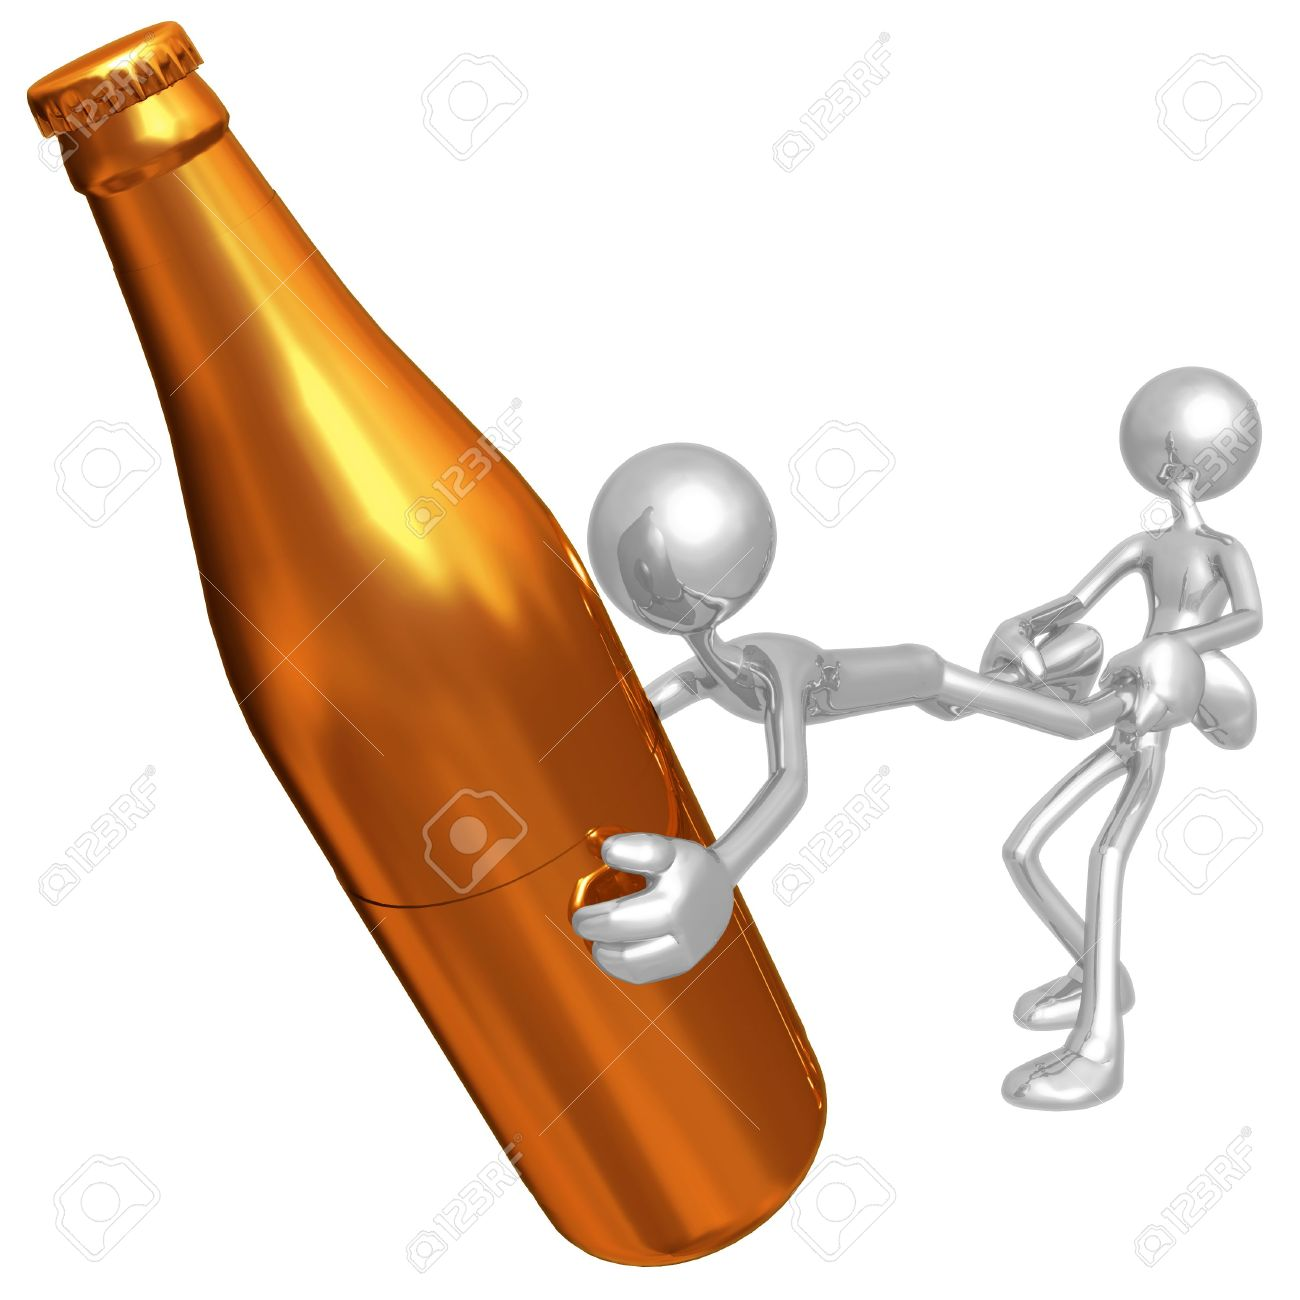 Alcohol clipart cartoon Alcohol intervention Intervention Alcohol Stock